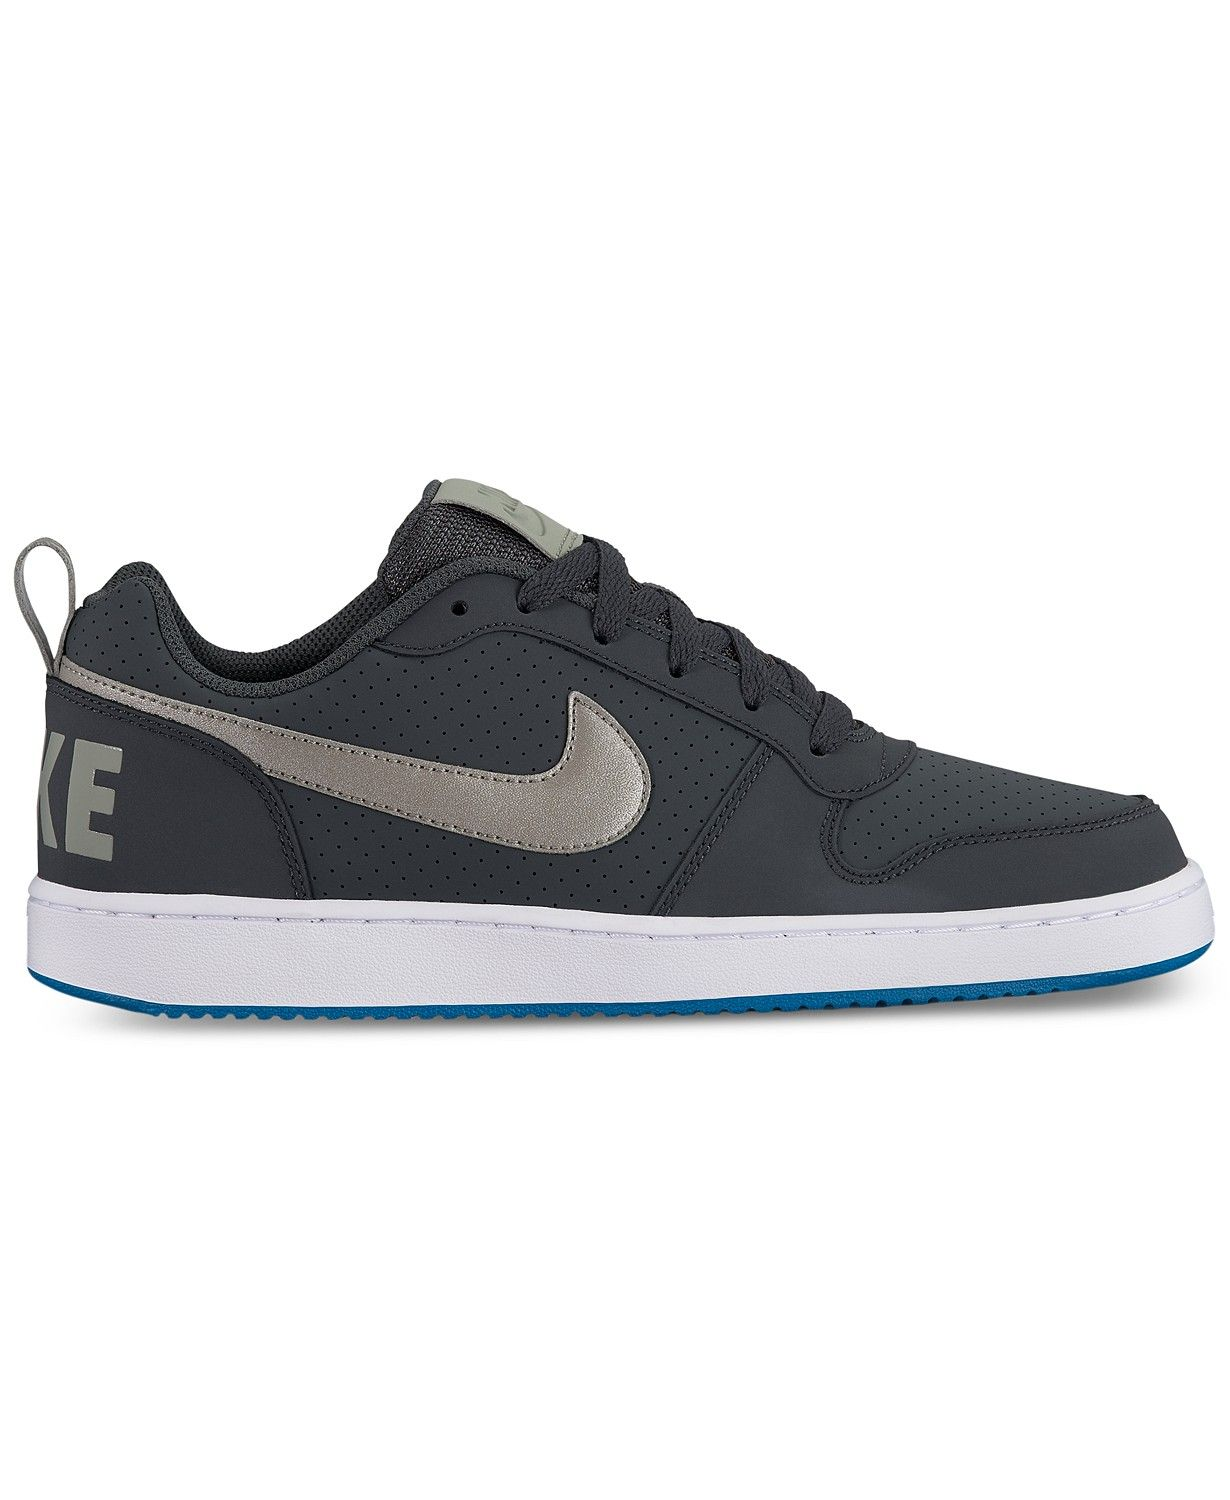 finest selection 0456a a6389 Nike Men s Court Borough Low Premium Casual Sneakers from Finish Line    macys.com